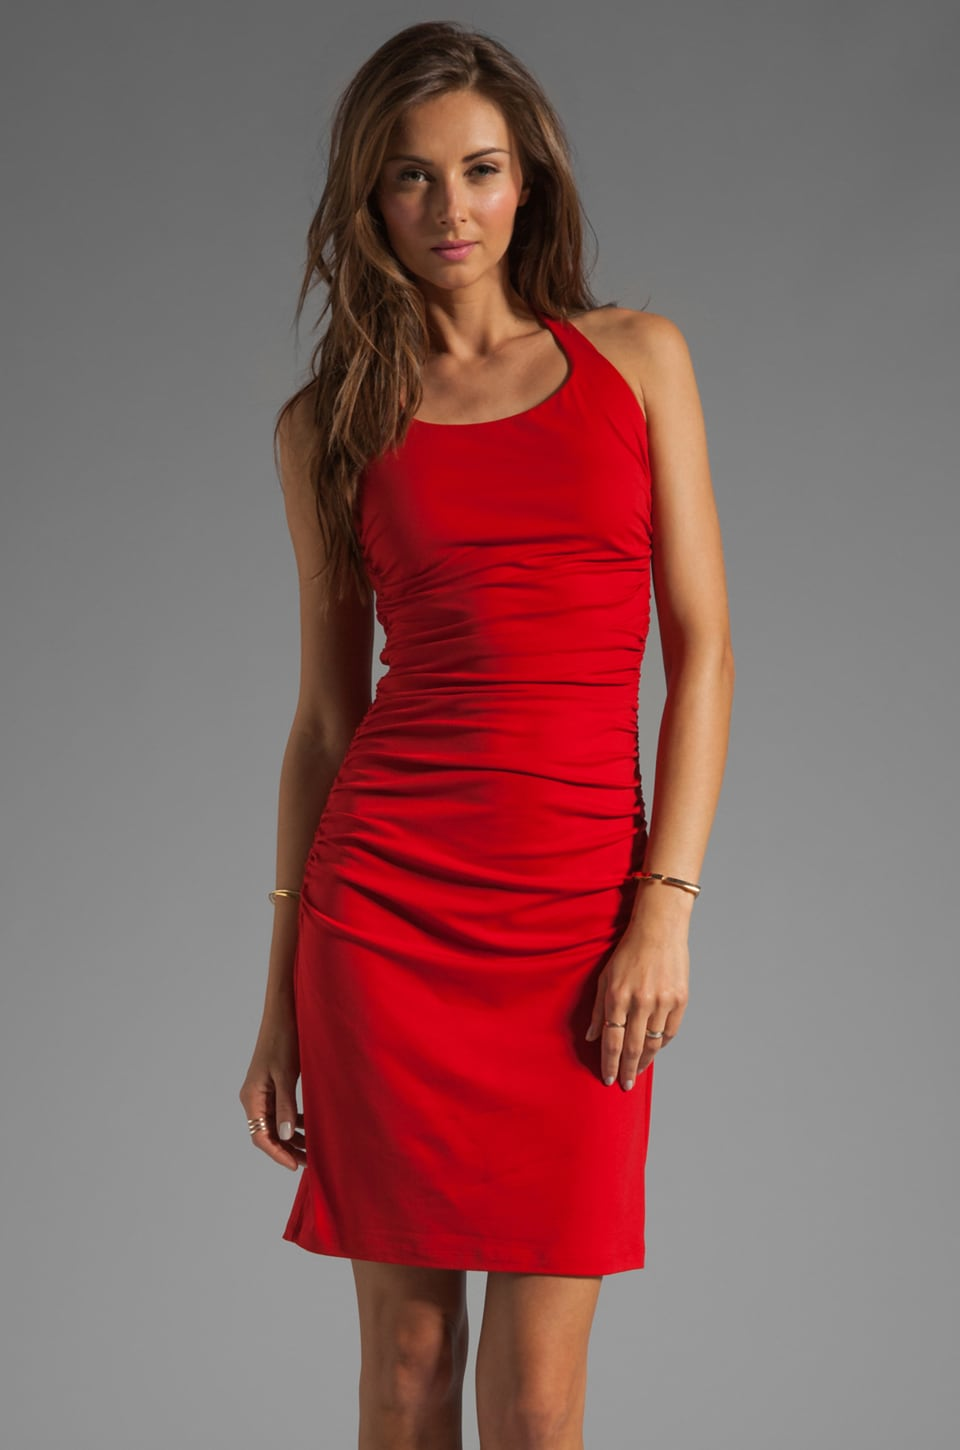 Susana Monaco Light Supplex Halter Drape Dress in Pepper